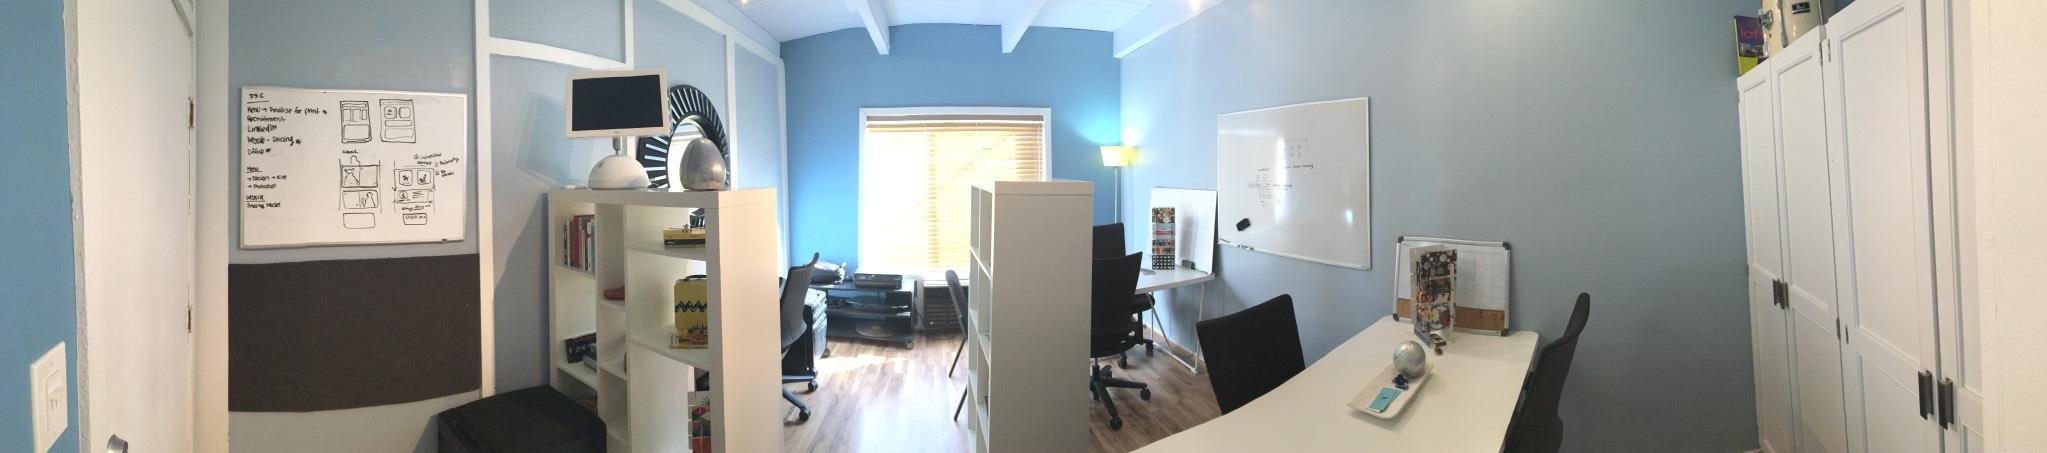 Co-Working Space in Studio City - Co-Working Space in Studio City